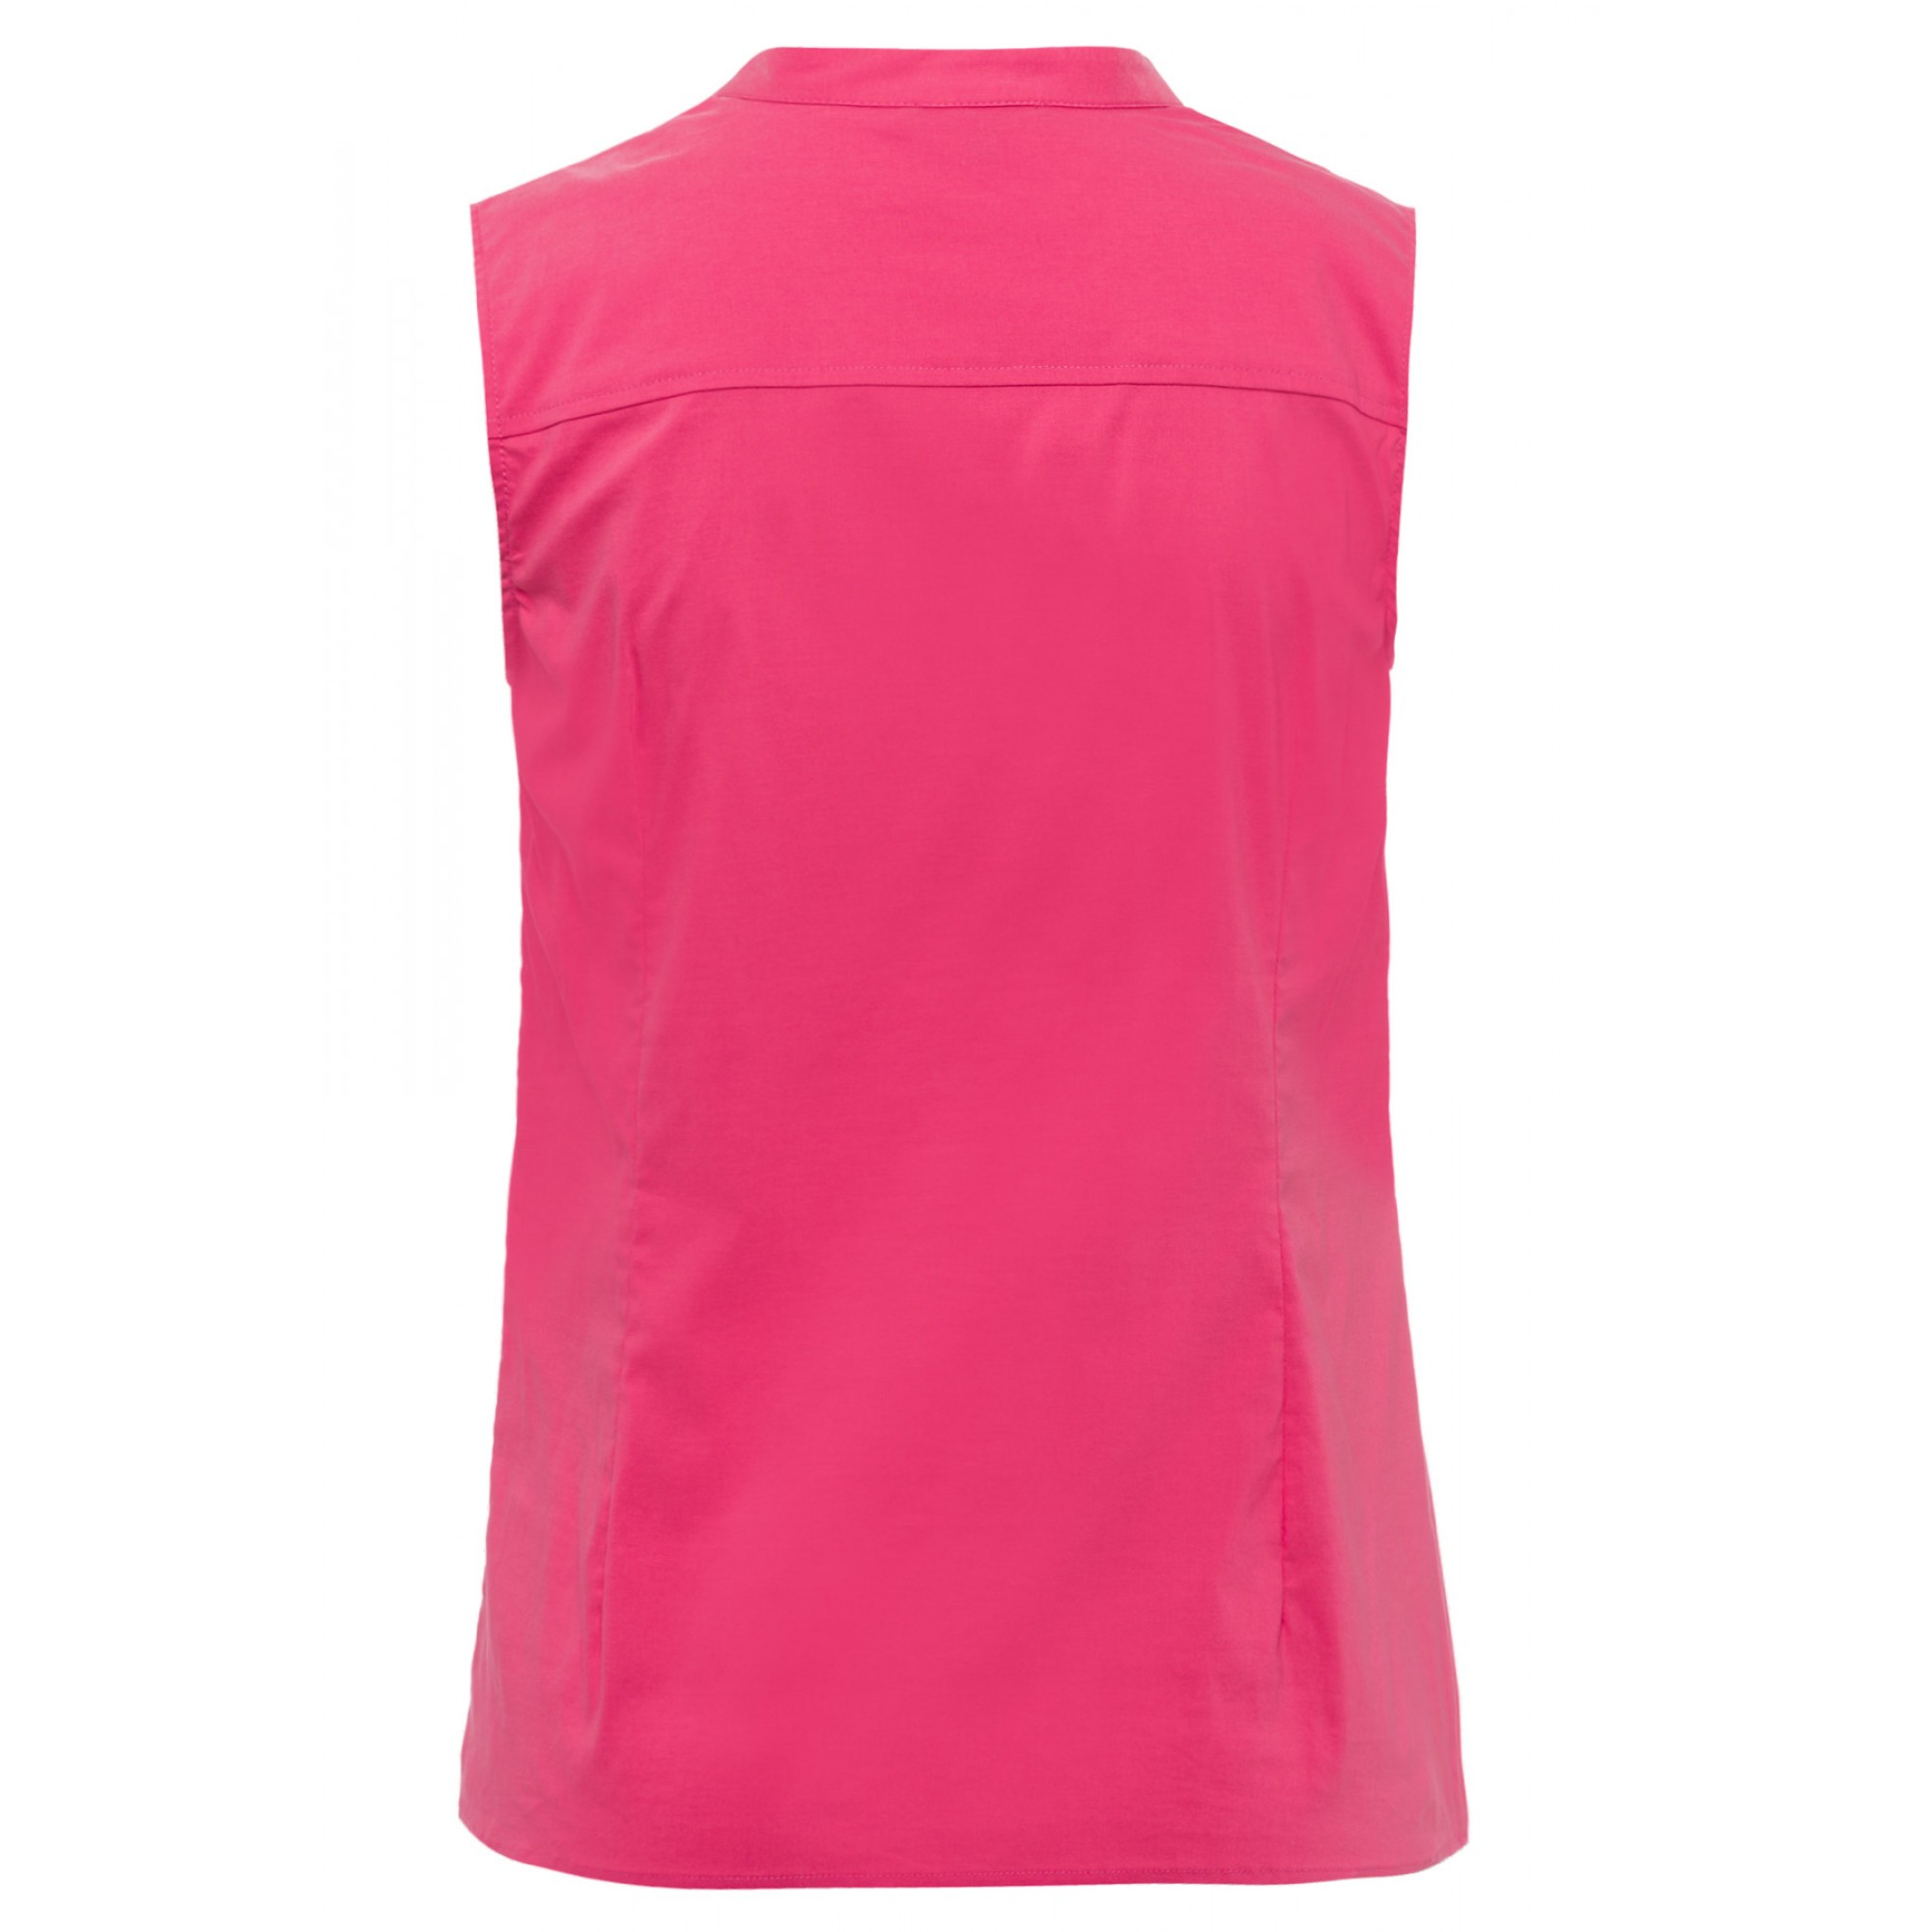 Bluse, Baumwoll/Stretch, pink berry 11832590-0831 2